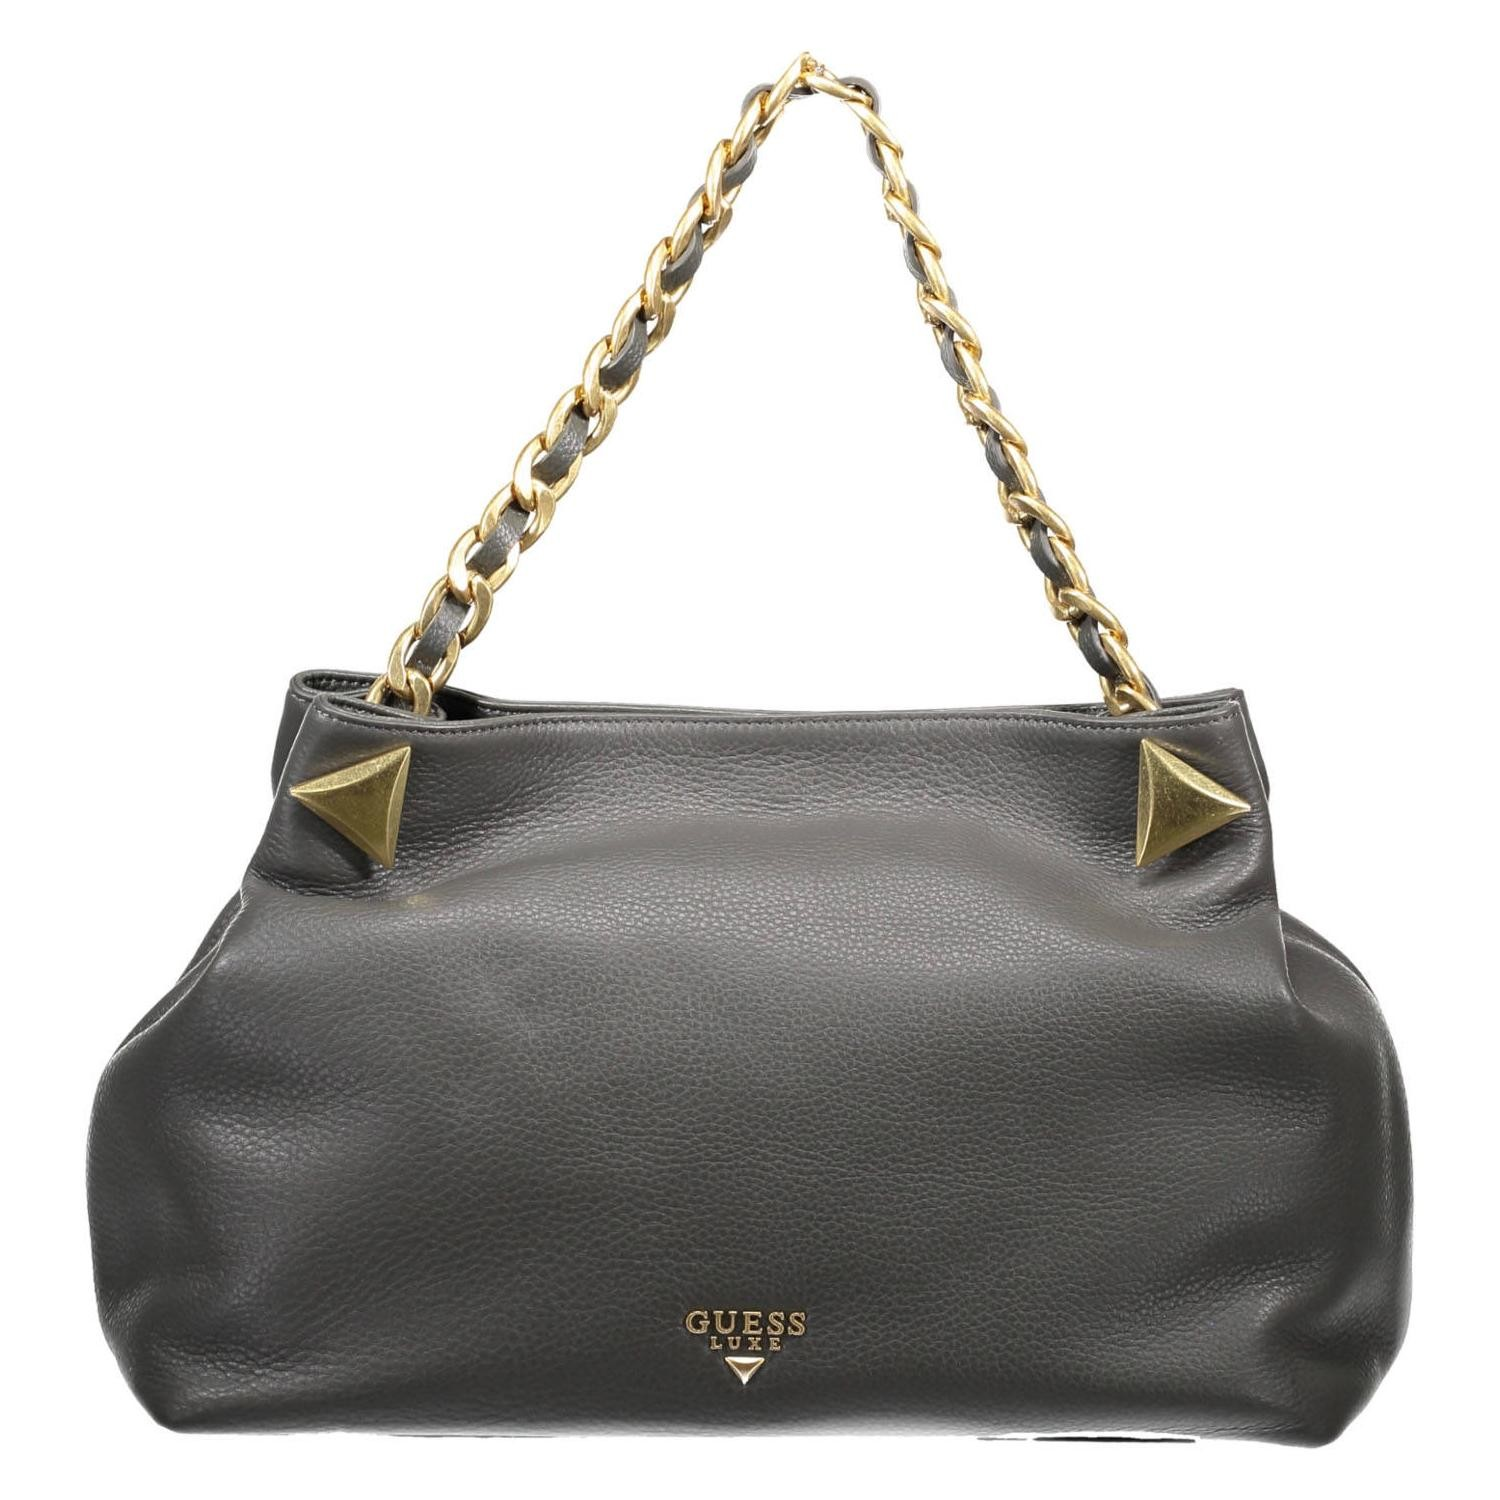 Guess Luxe Leather Handbags